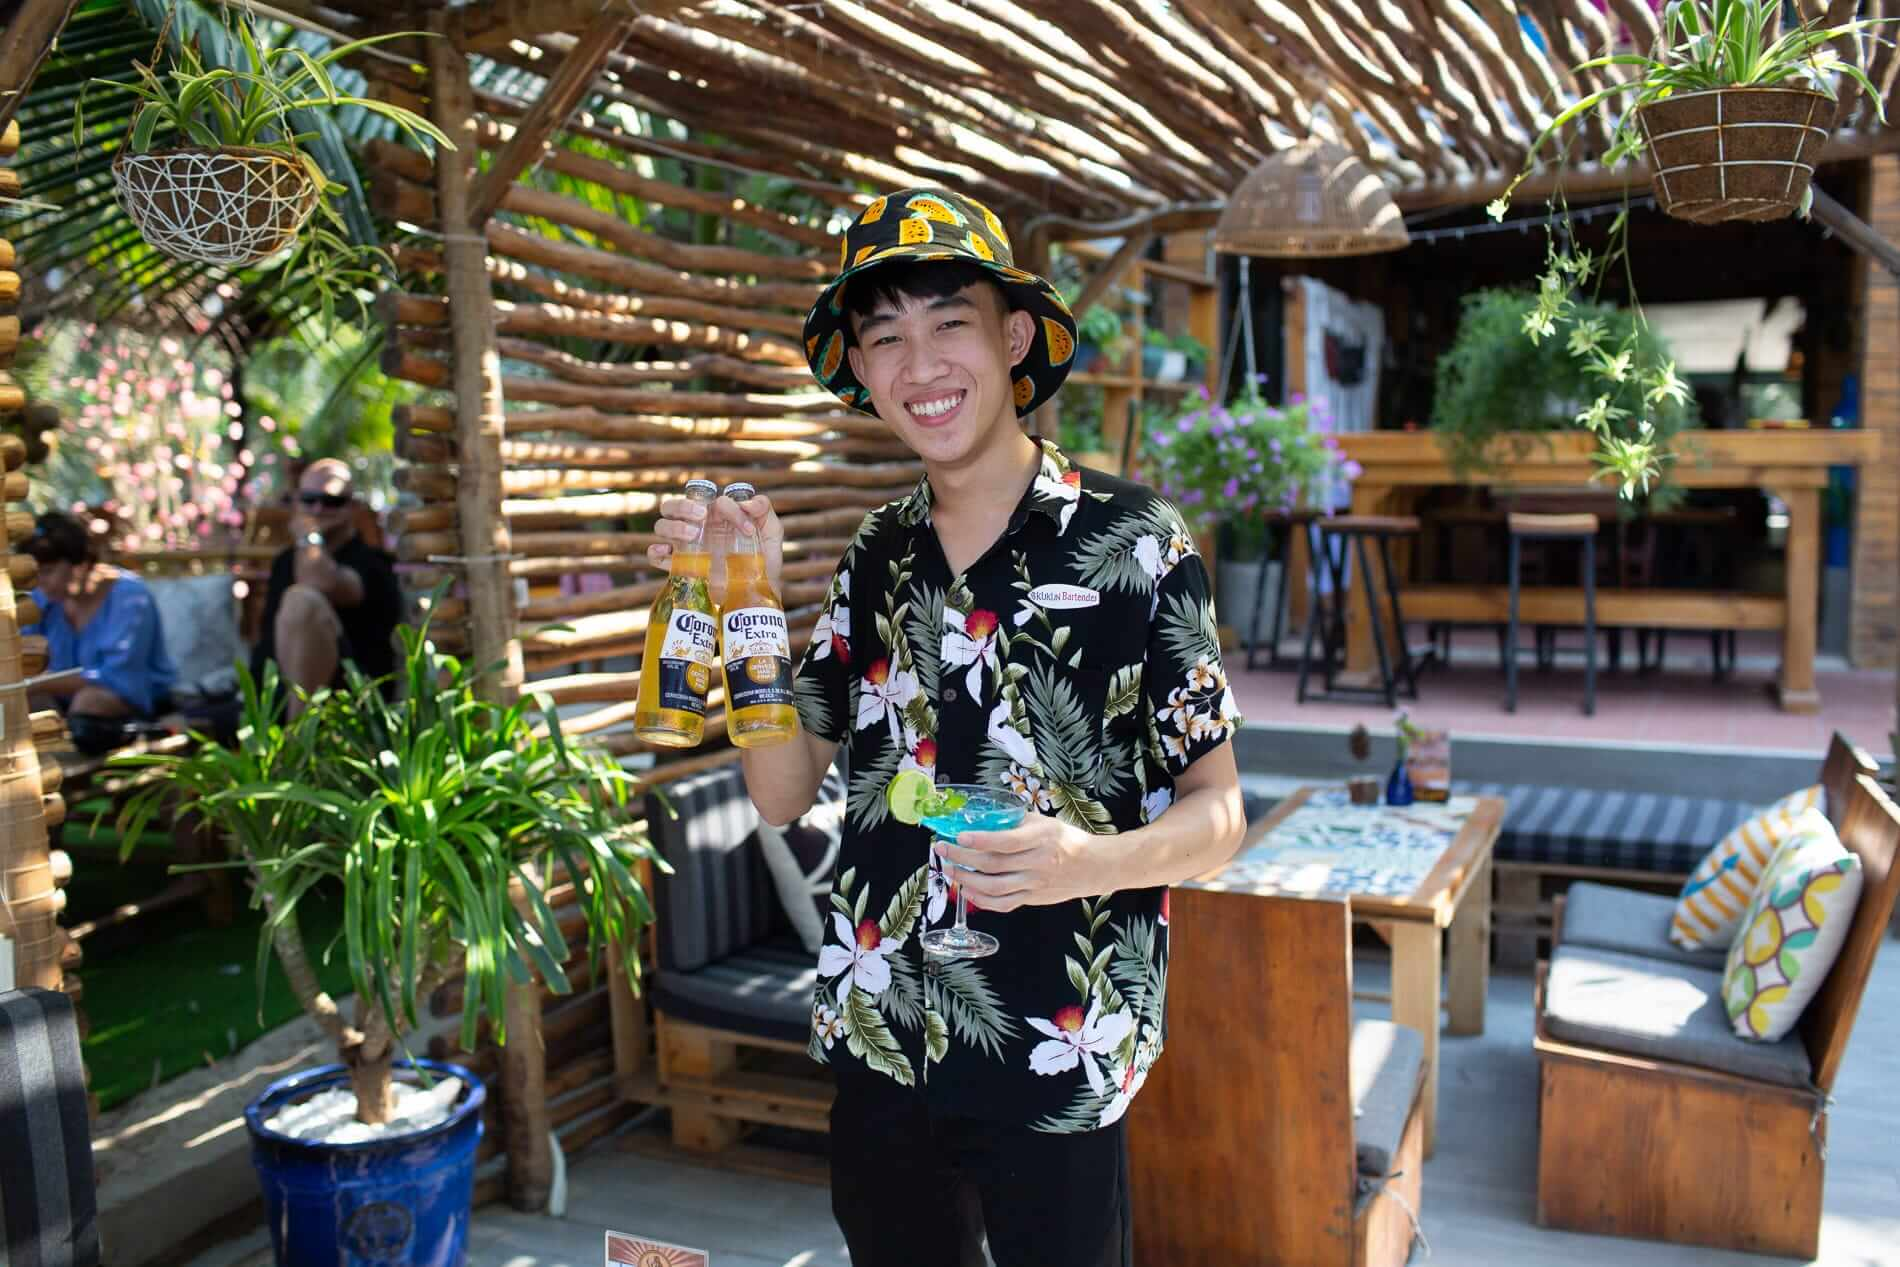 Kukun staff holding ice cold beers